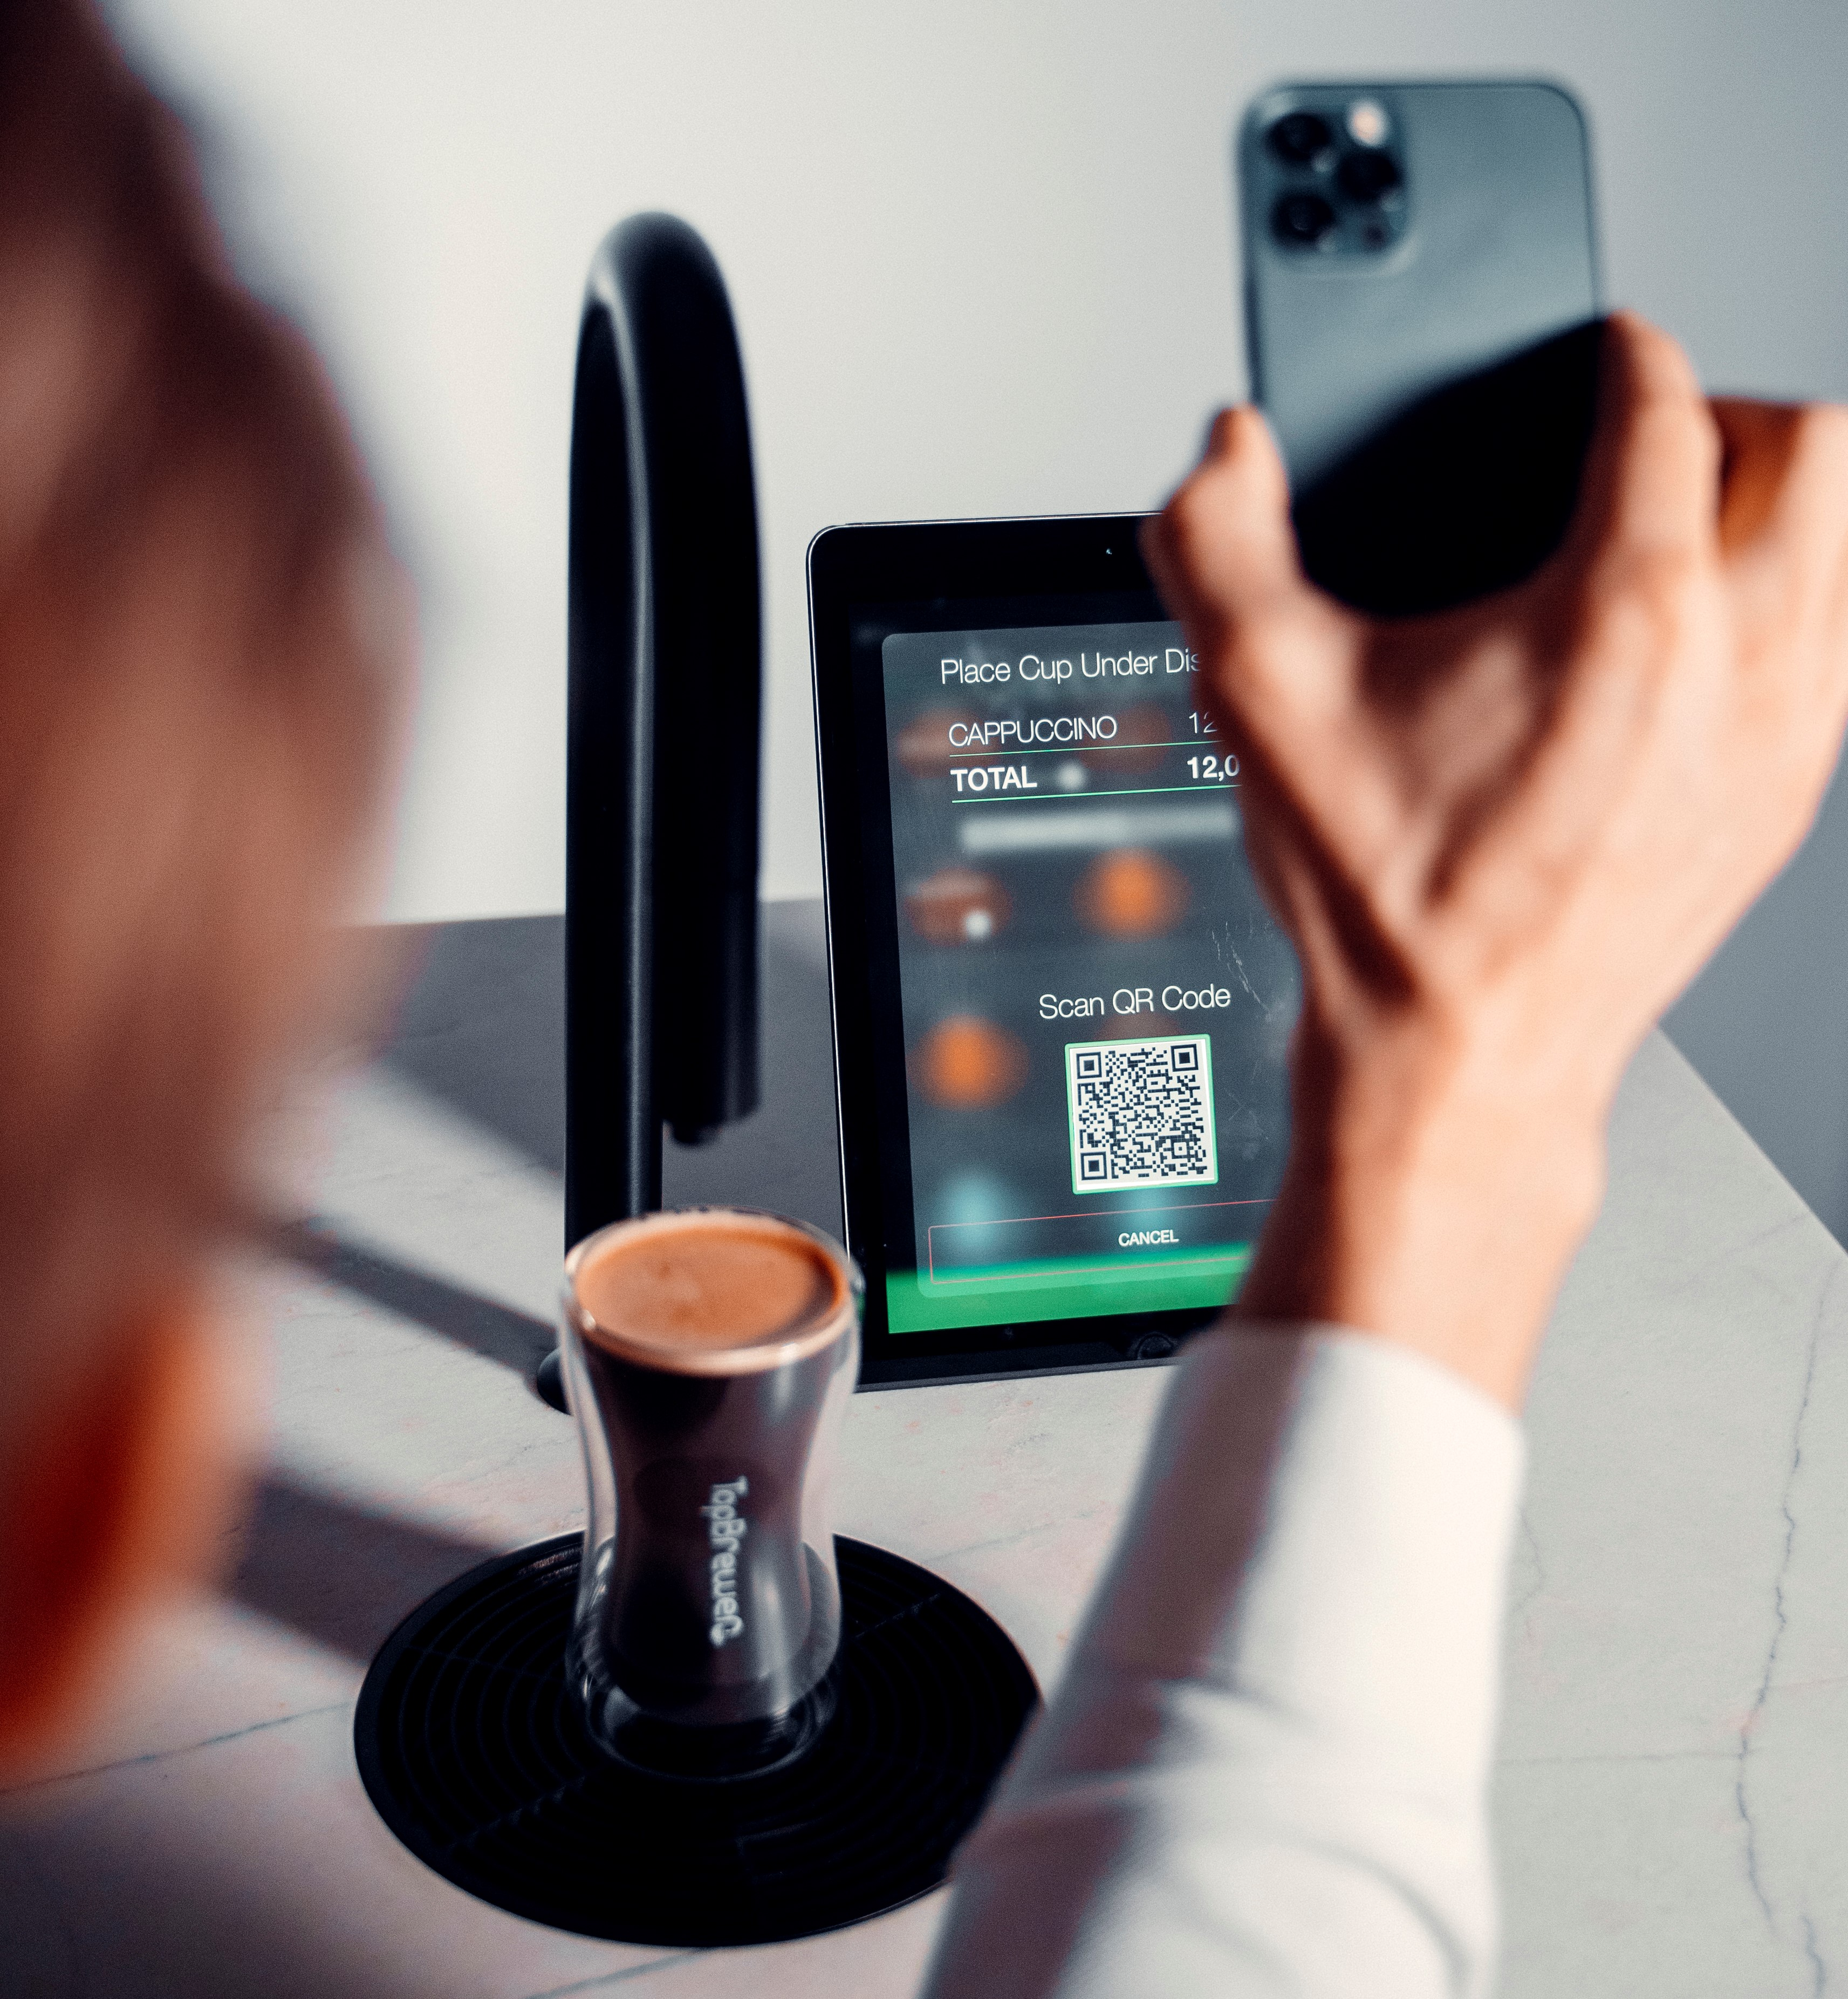 A member making a coffee by scanning QR code